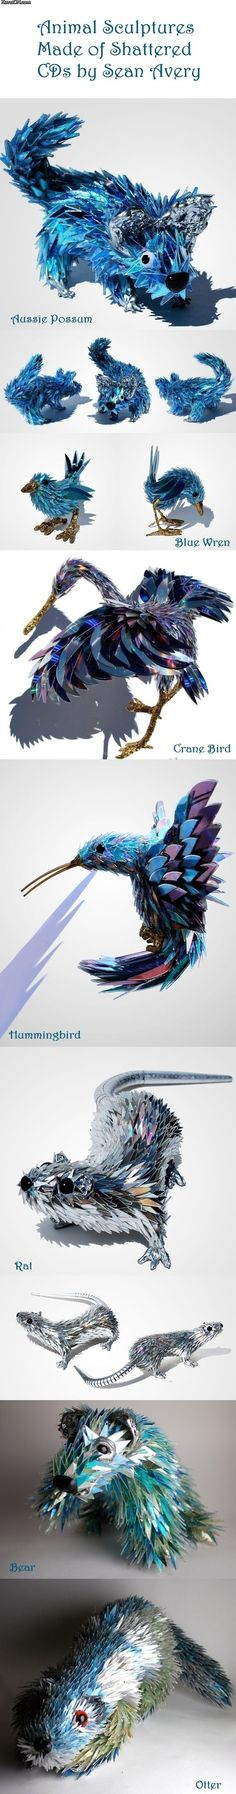 Animal sculptures made of shattered CDs by Sean Avery